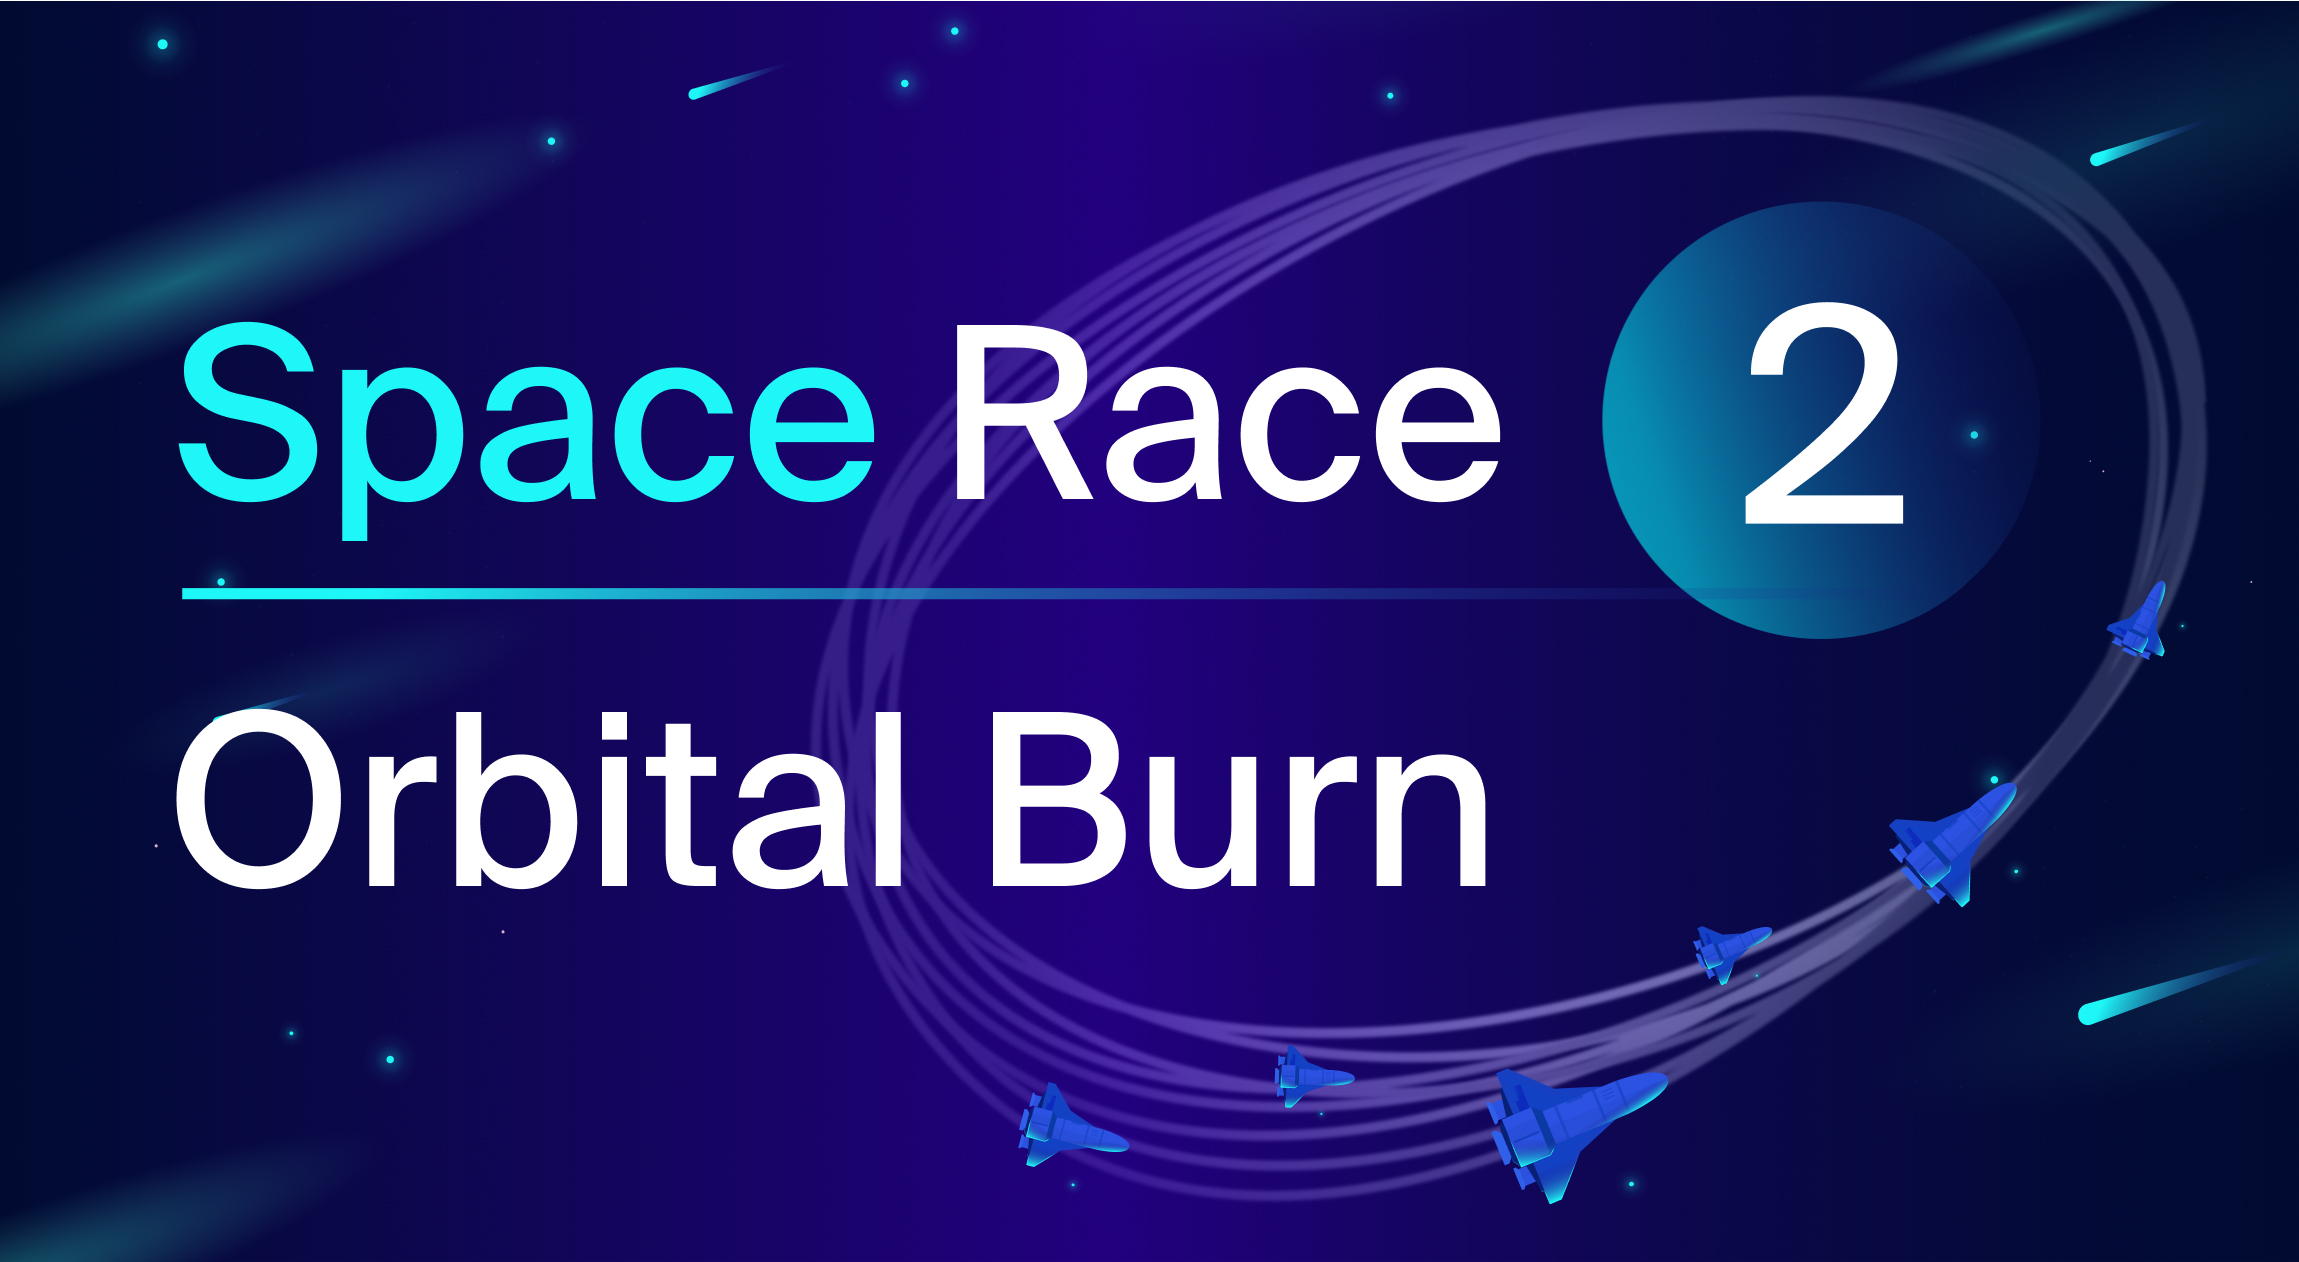 Space Race Orbital Burn